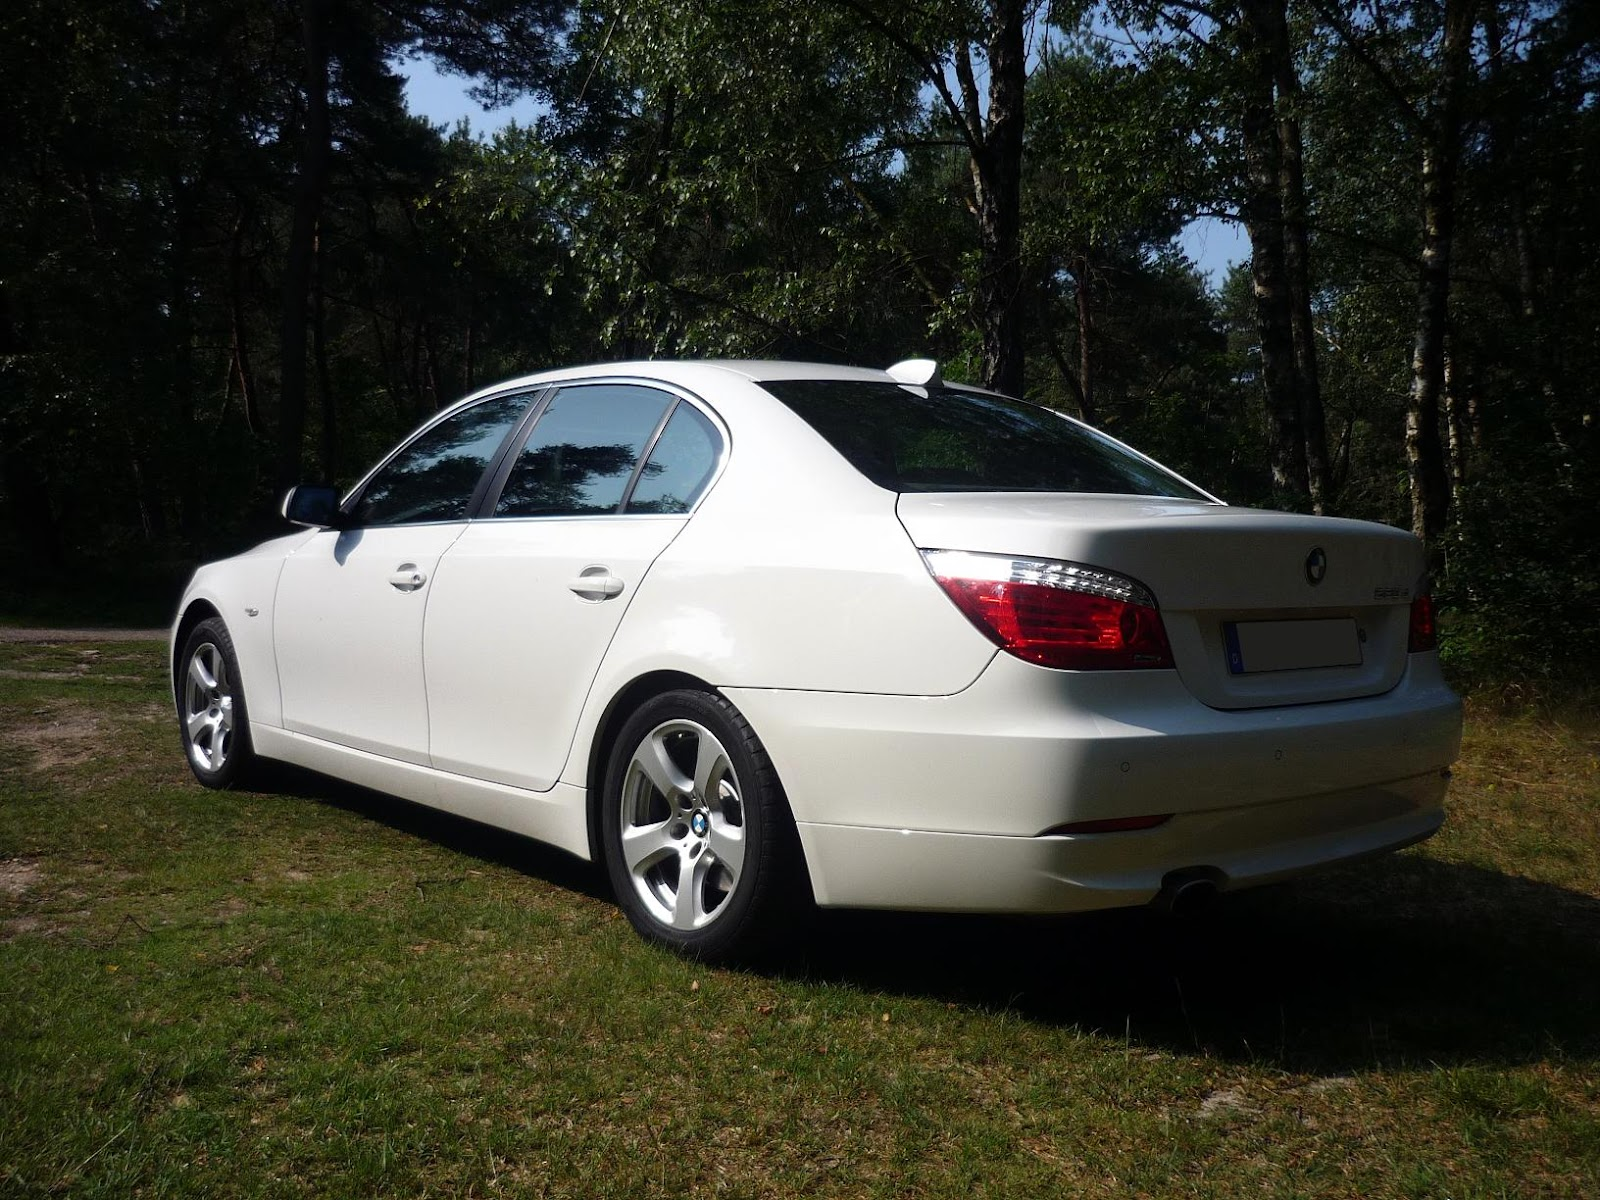 Both The 5 Series Are Alpine White, While The E60 Is A 2009 Model, The F10  Is A 2011 Model.